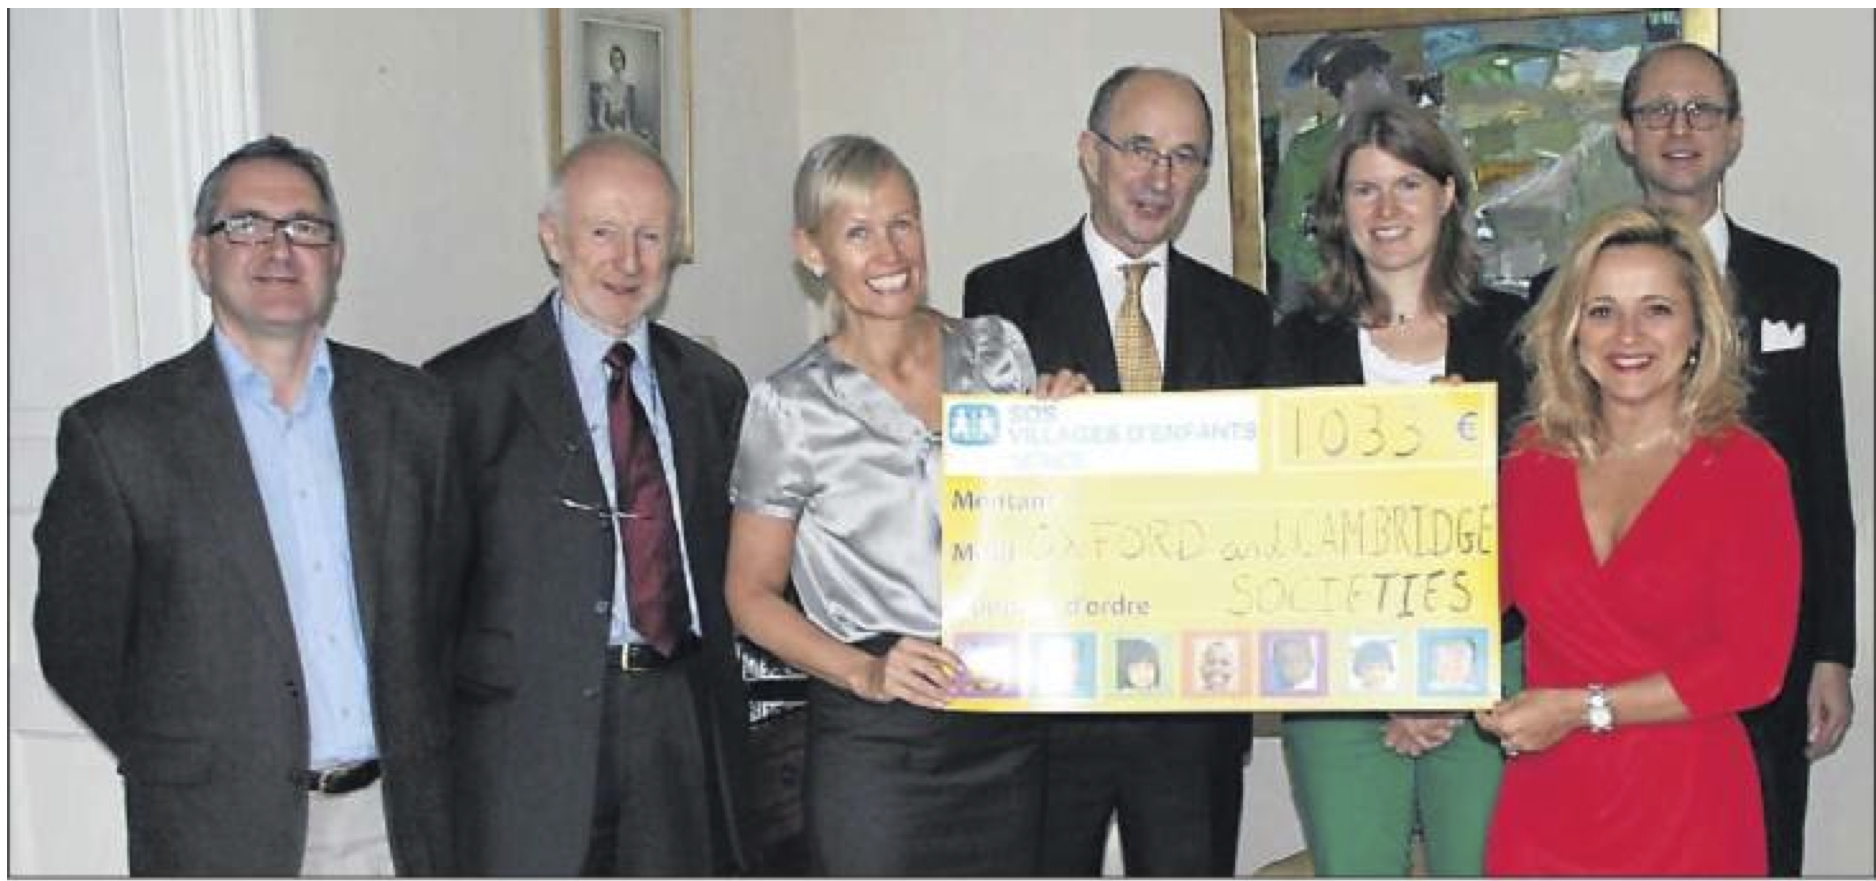 Our chairman, former chairman and treasurer, together with Steve Brabbs of the Cambridge society, present the cheque to the representatives of SOS Village d'Enfants in the presence of the British Ambassador, HE the Hon. Alice Walpole